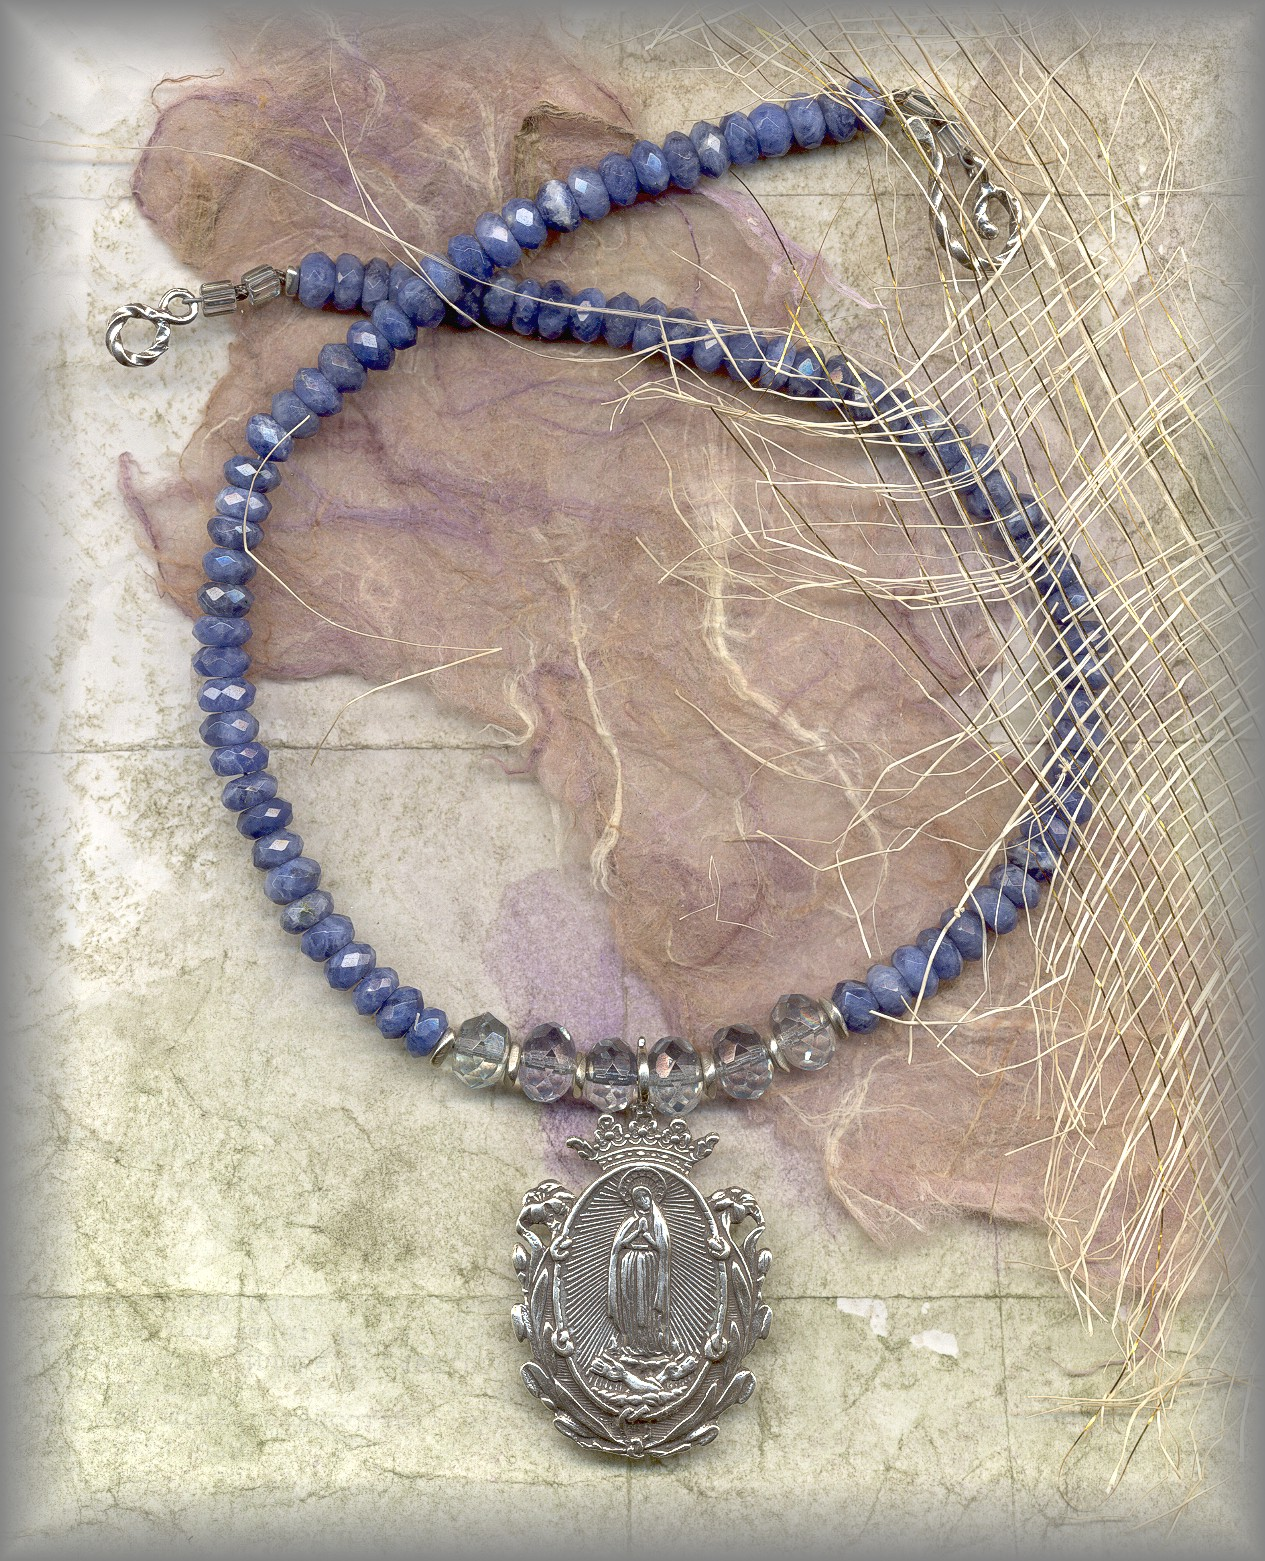 RELIGIOUS JEWELRY: JNOLG.2430 ( faceted sodalite)